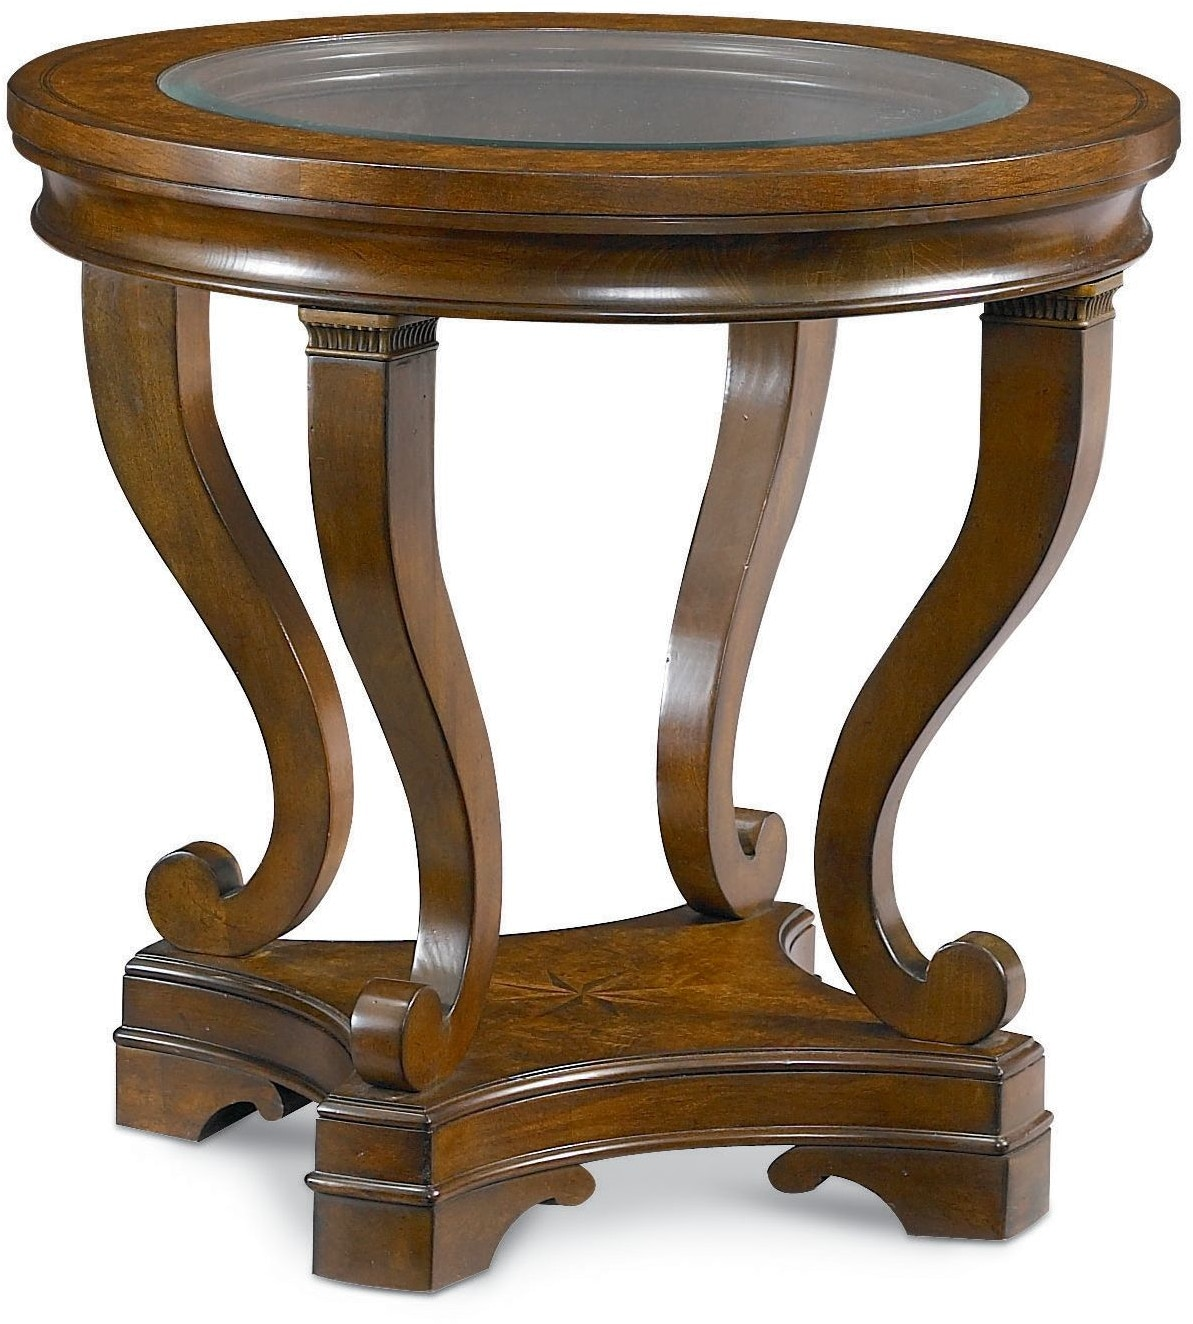 Thomasville Living Room Round Lamp Table 46731 231